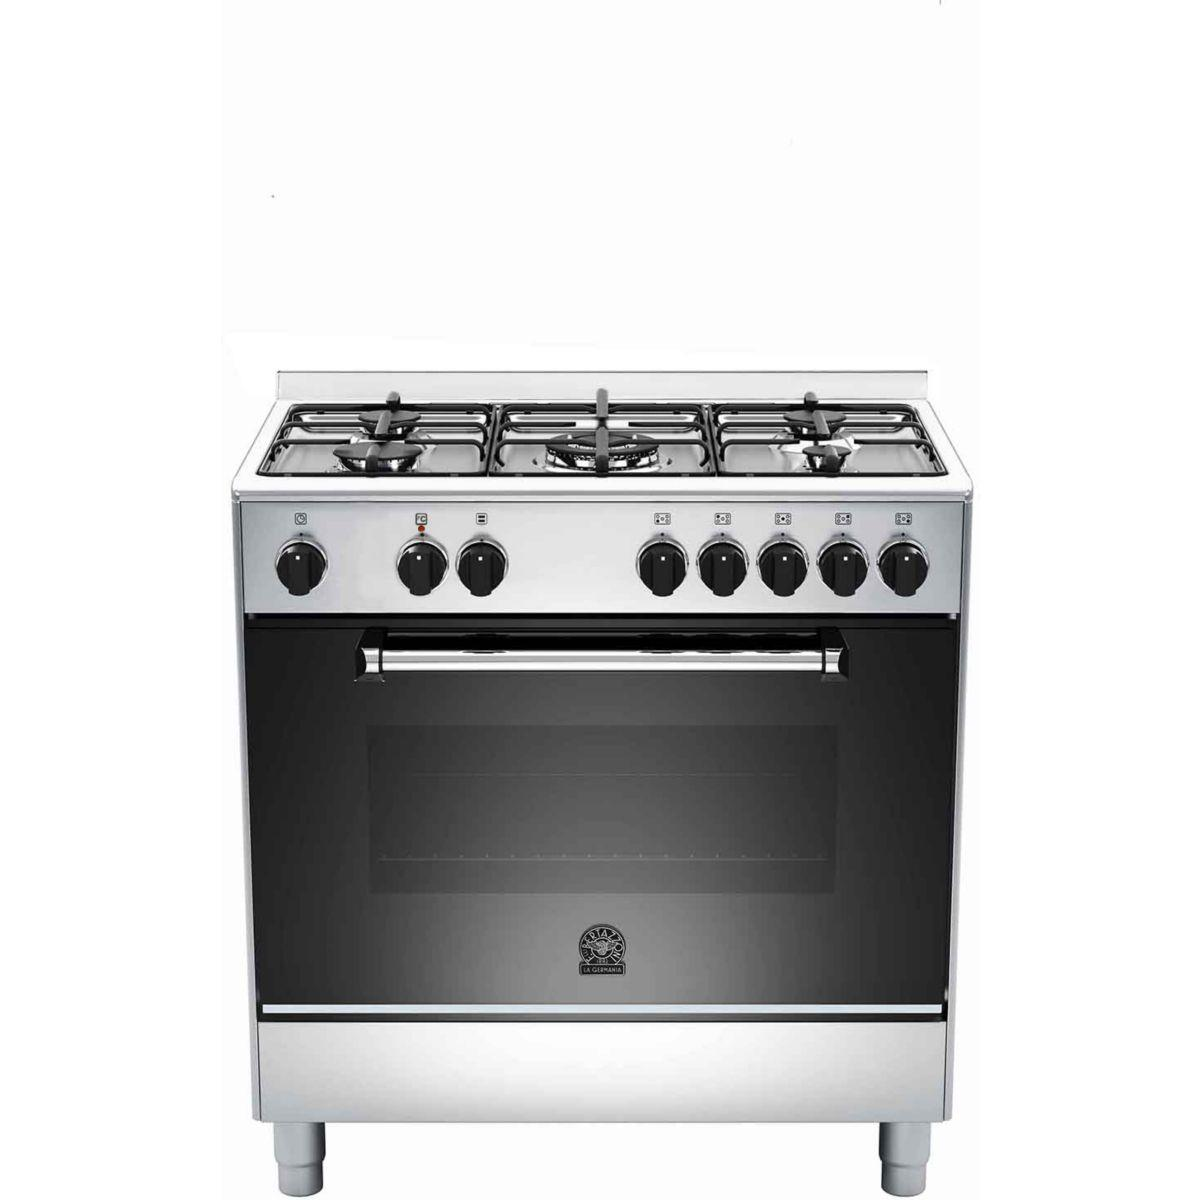 Piano de cuisson mixte bertazzoni germania am85c61dxt (photo)